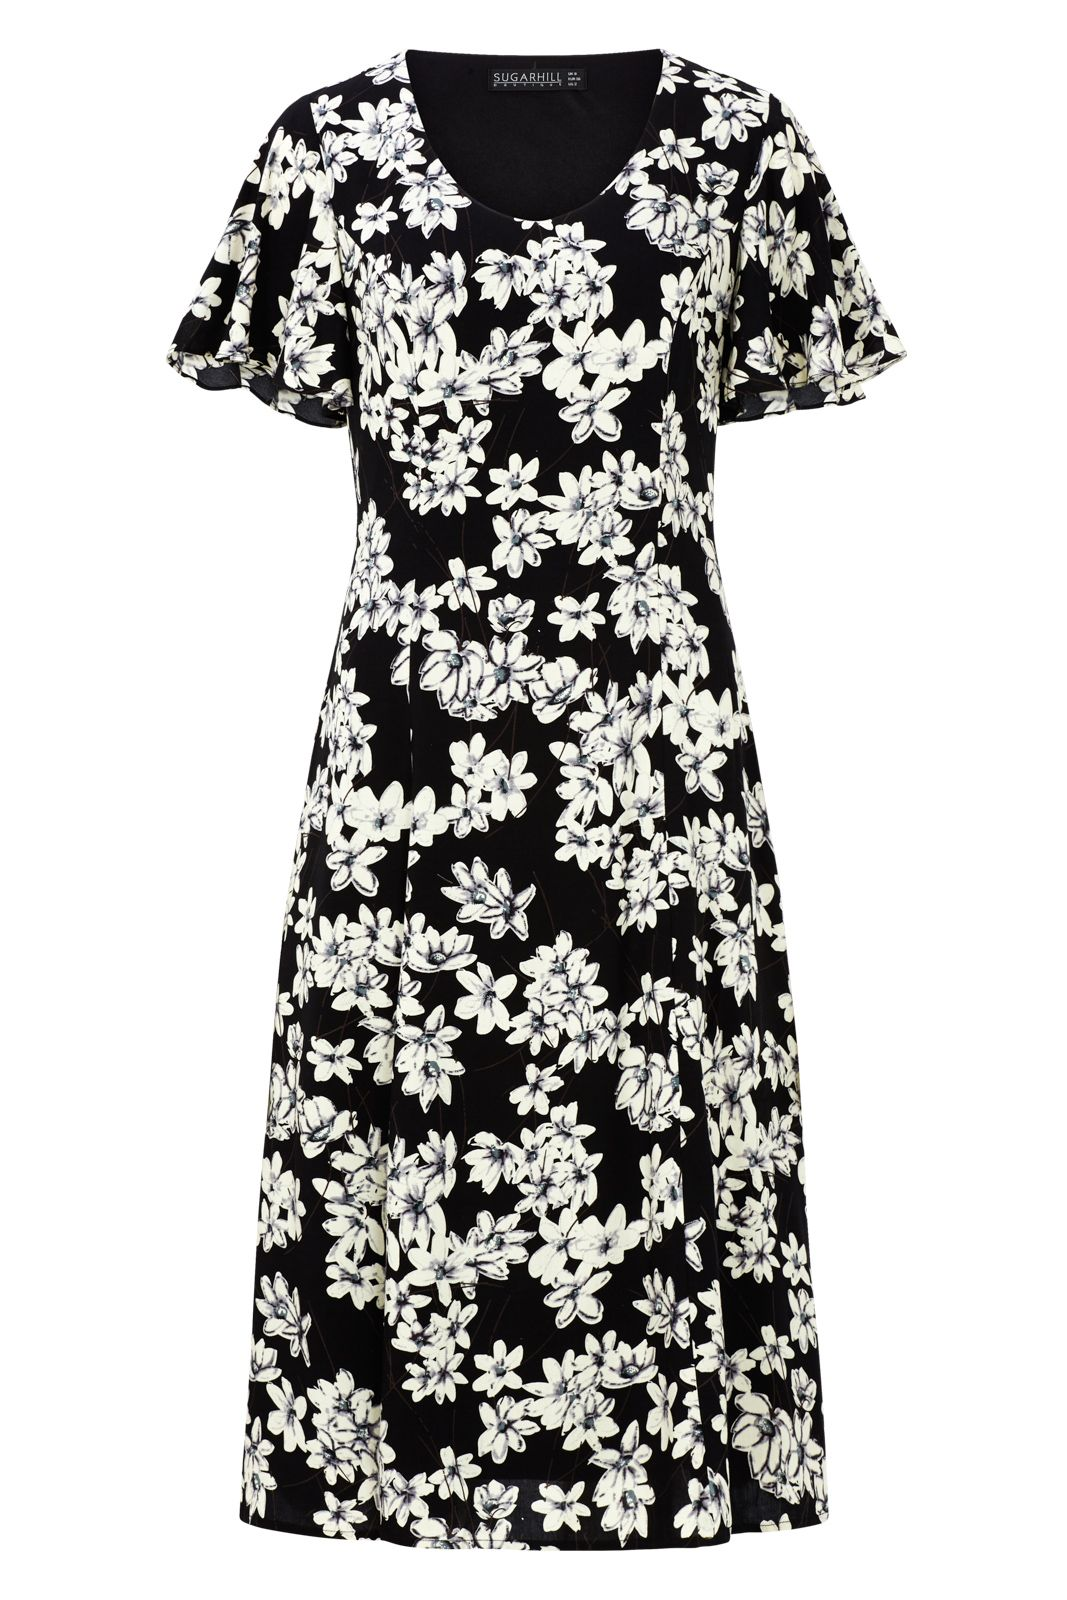 Sugarhill Boutique Rebekka Floral Midi Dress, Black